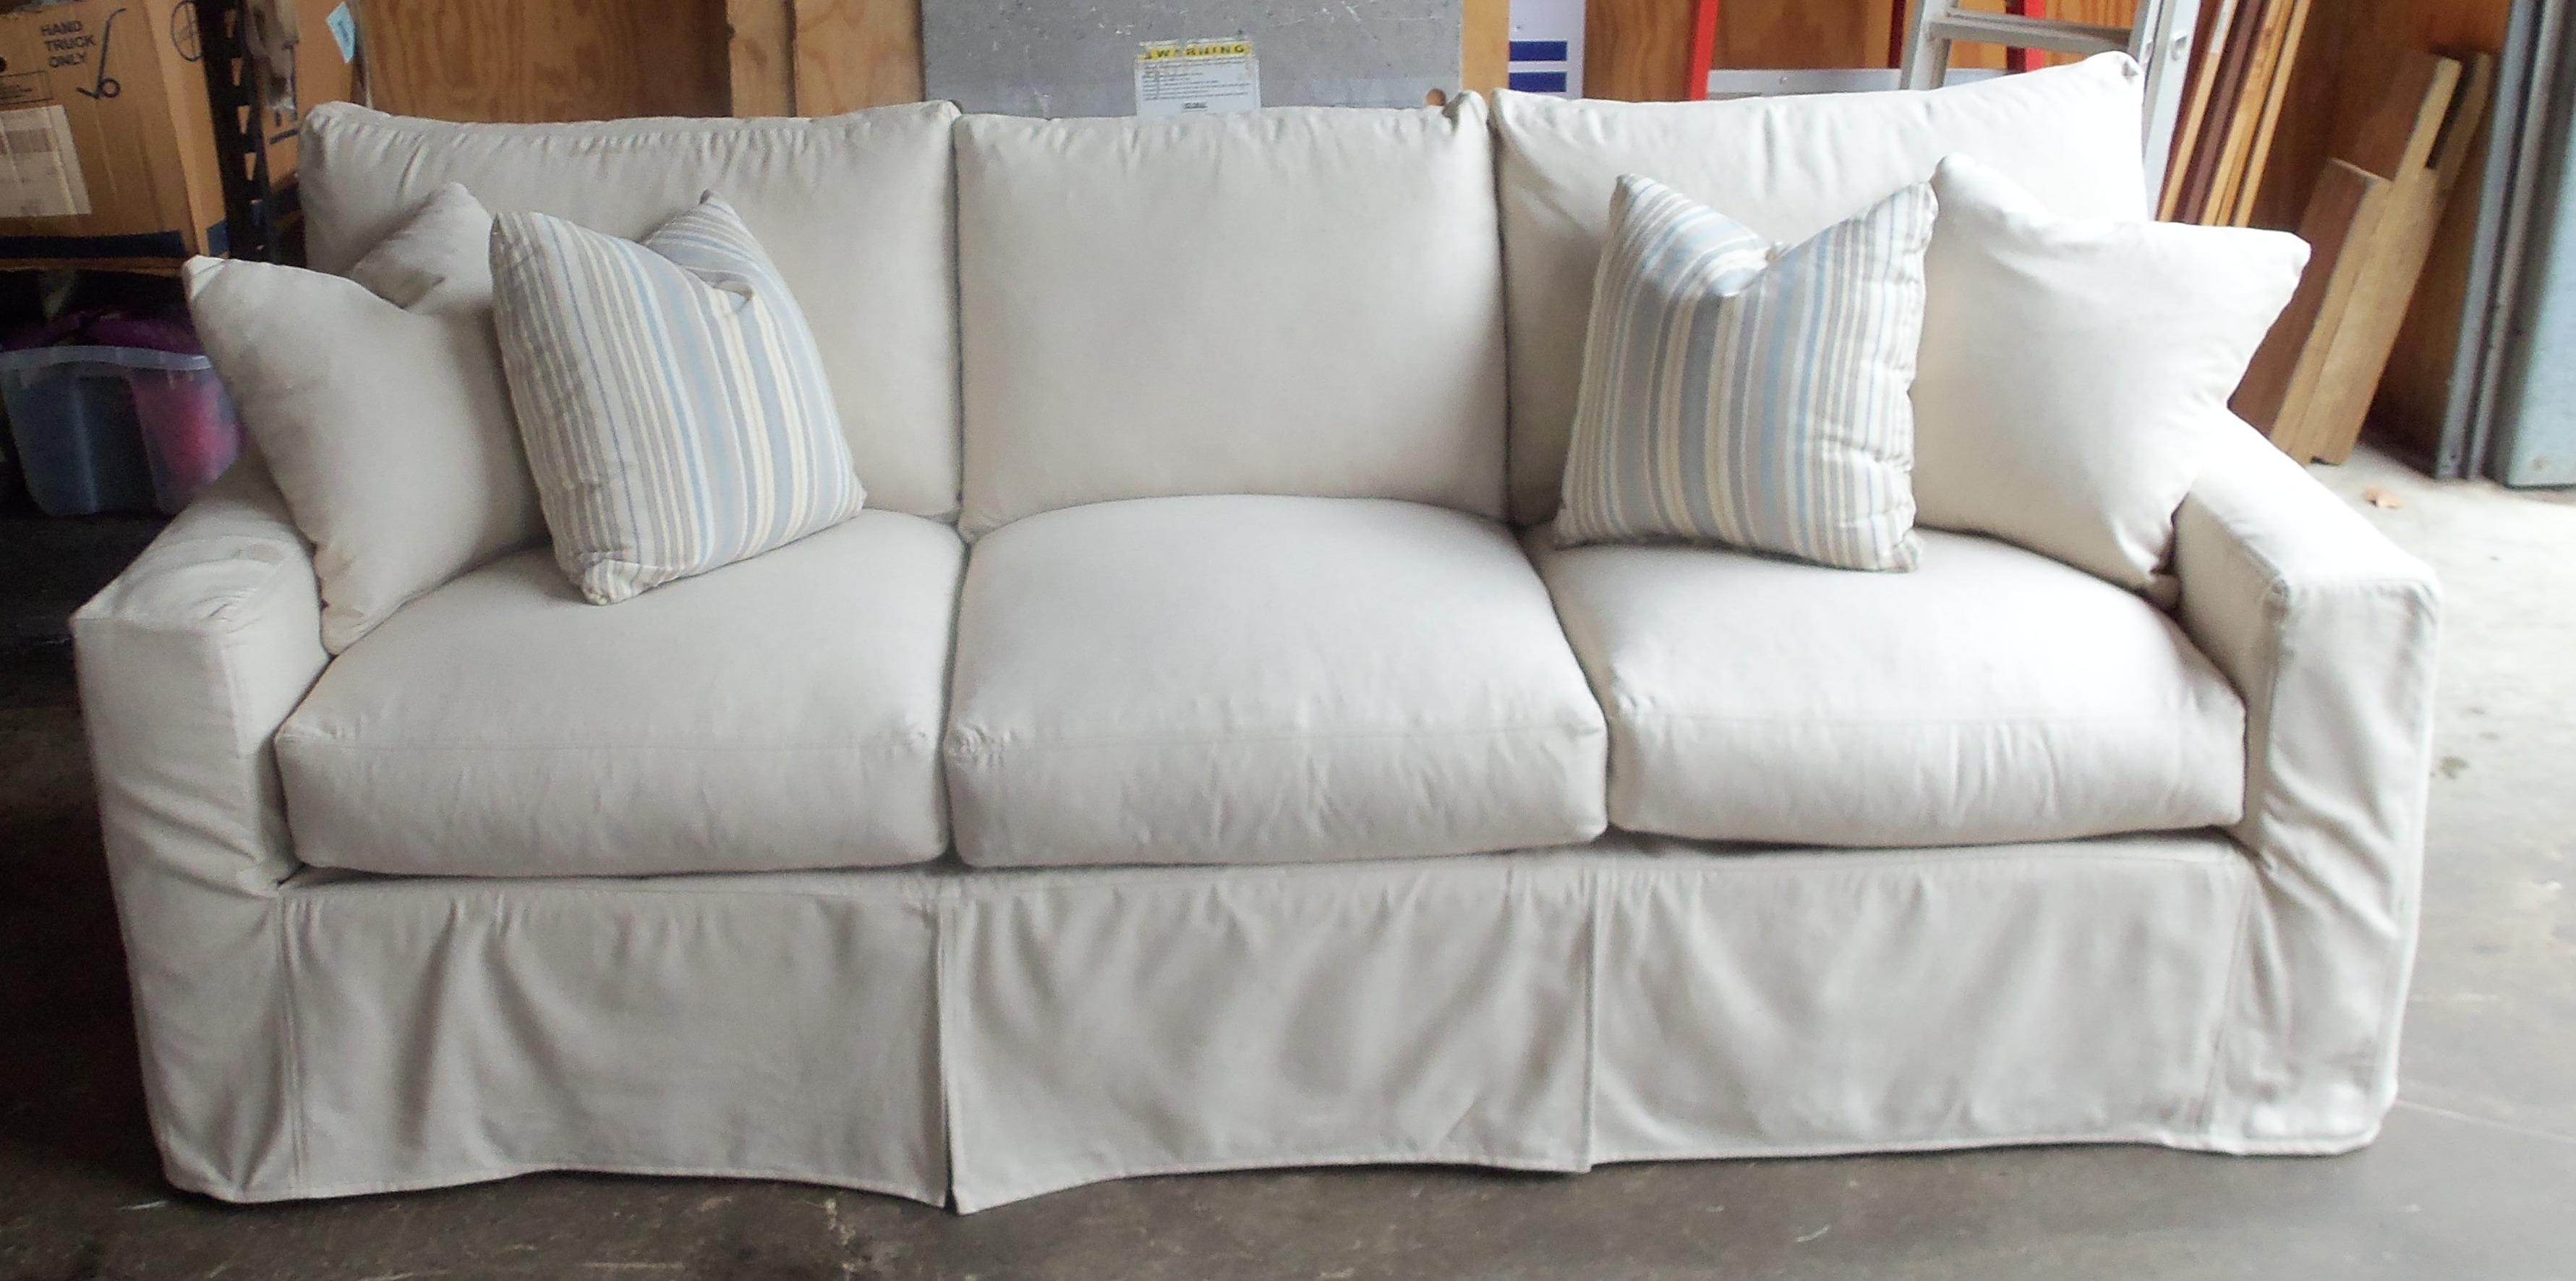 Sofas Center : Slipcovers For Sofa Beds With Chaise Couch Regarding Slipcovers Sofas (Image 19 of 20)